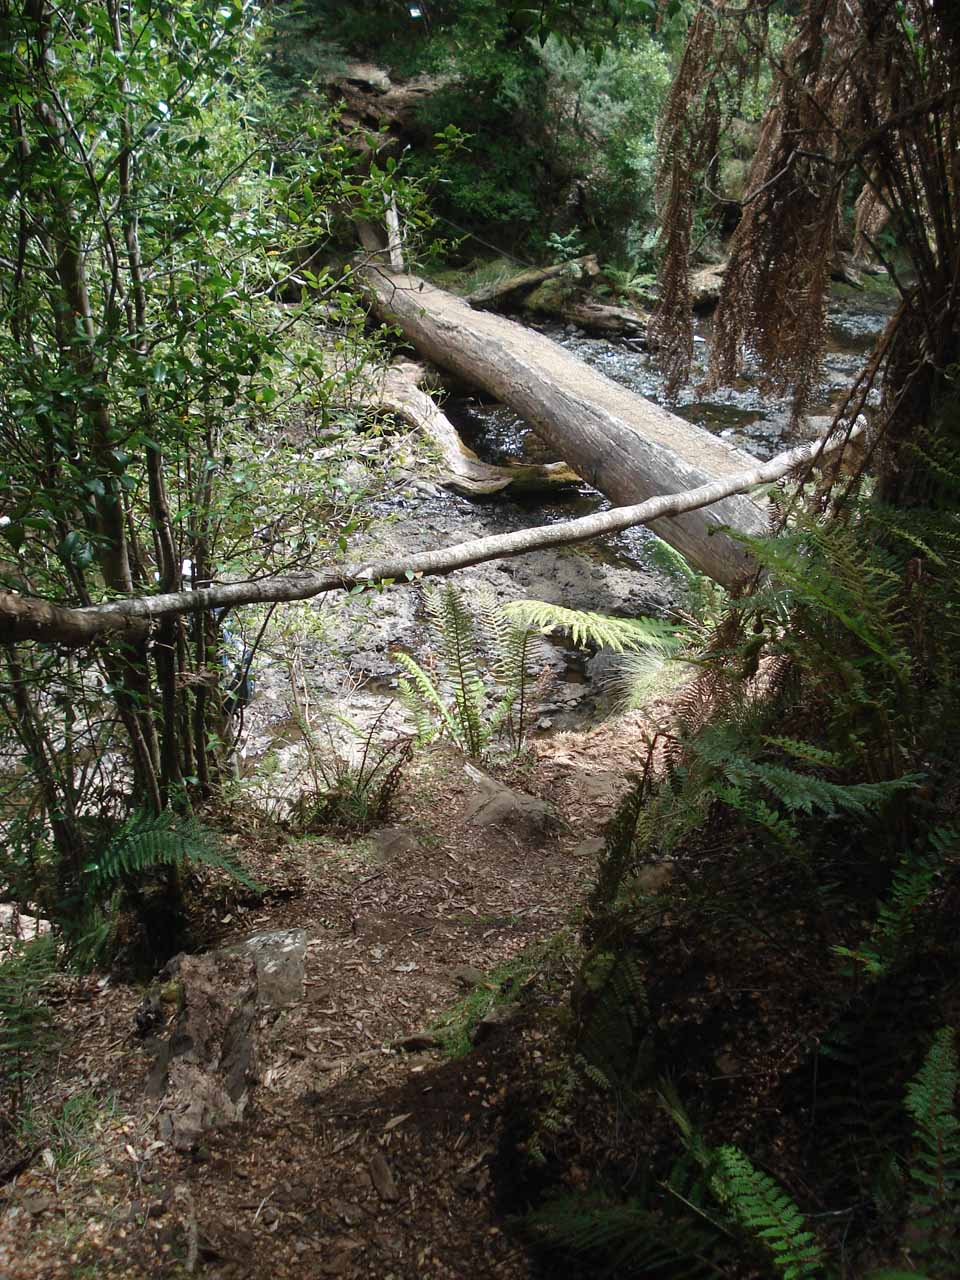 Looking back at the log bridge as we were about to rejoin the 4wd track back to the Lemonthyme Lodge. 11 years later, that bridge was replaced by a more typical sturdy bridge with railings